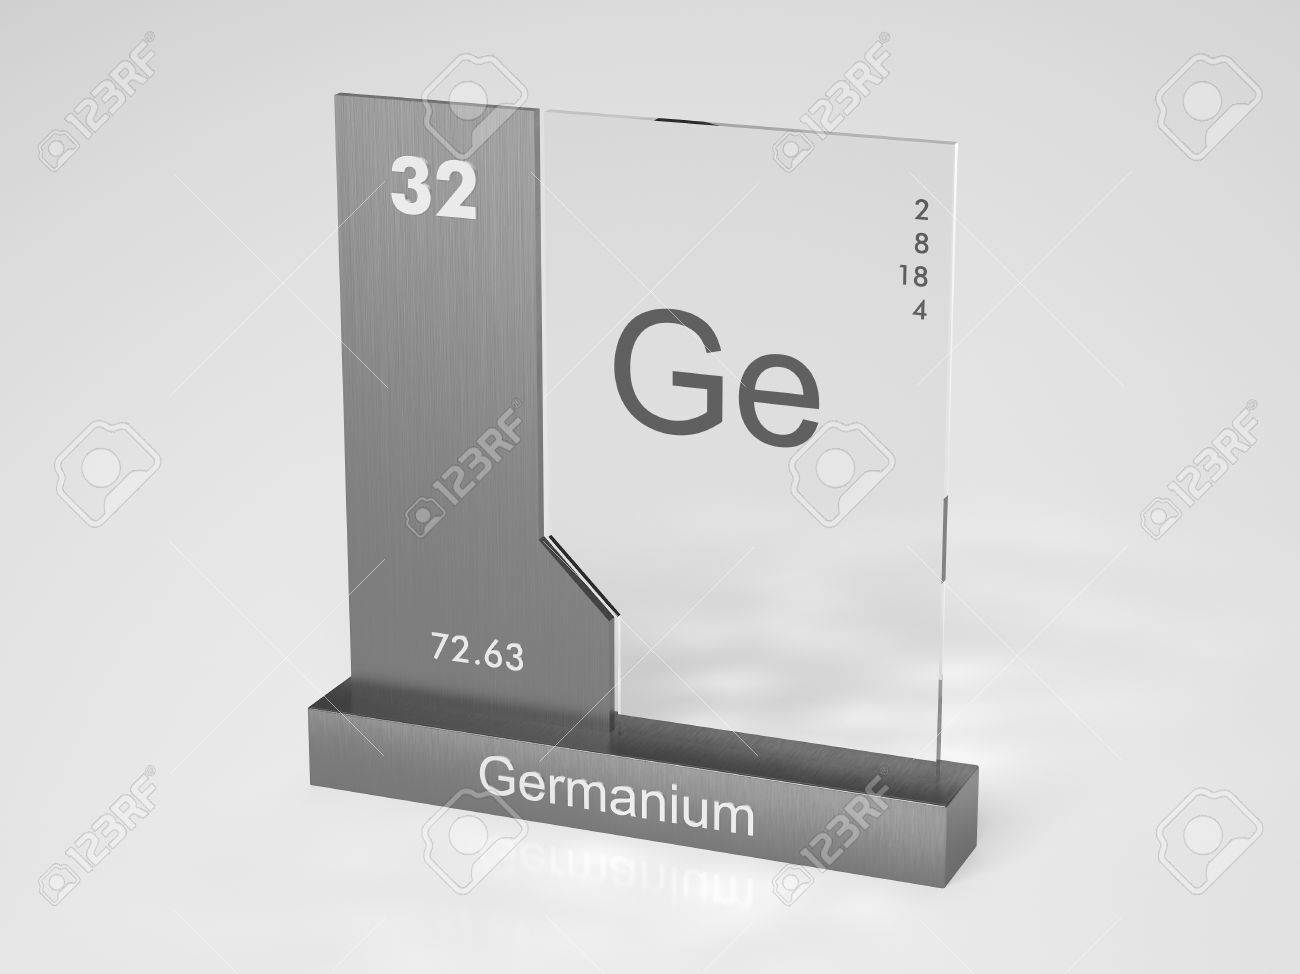 Germanium Symbol Ge Stock Photo Picture And Royalty Free Image